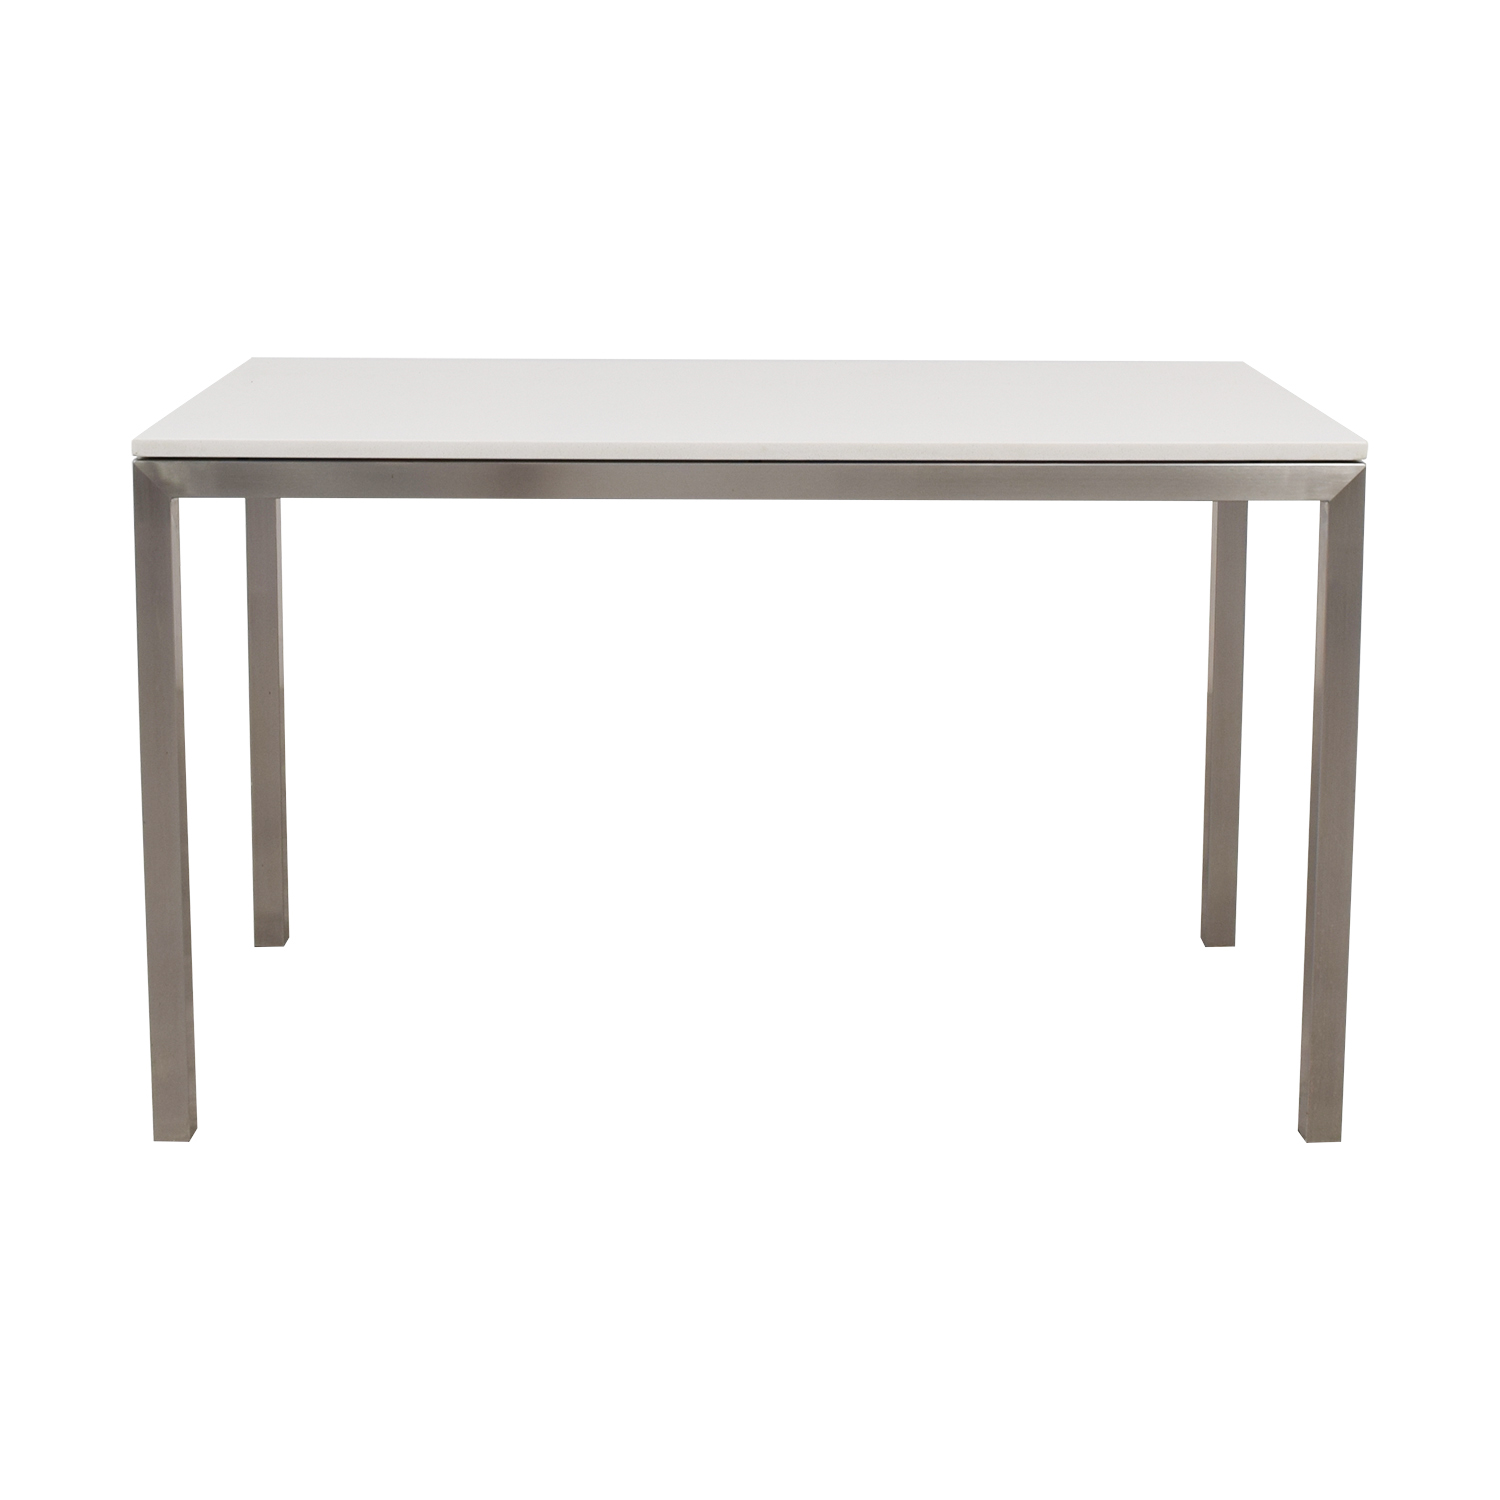 Room & Board Portica White Marble & Metal Table / Tables